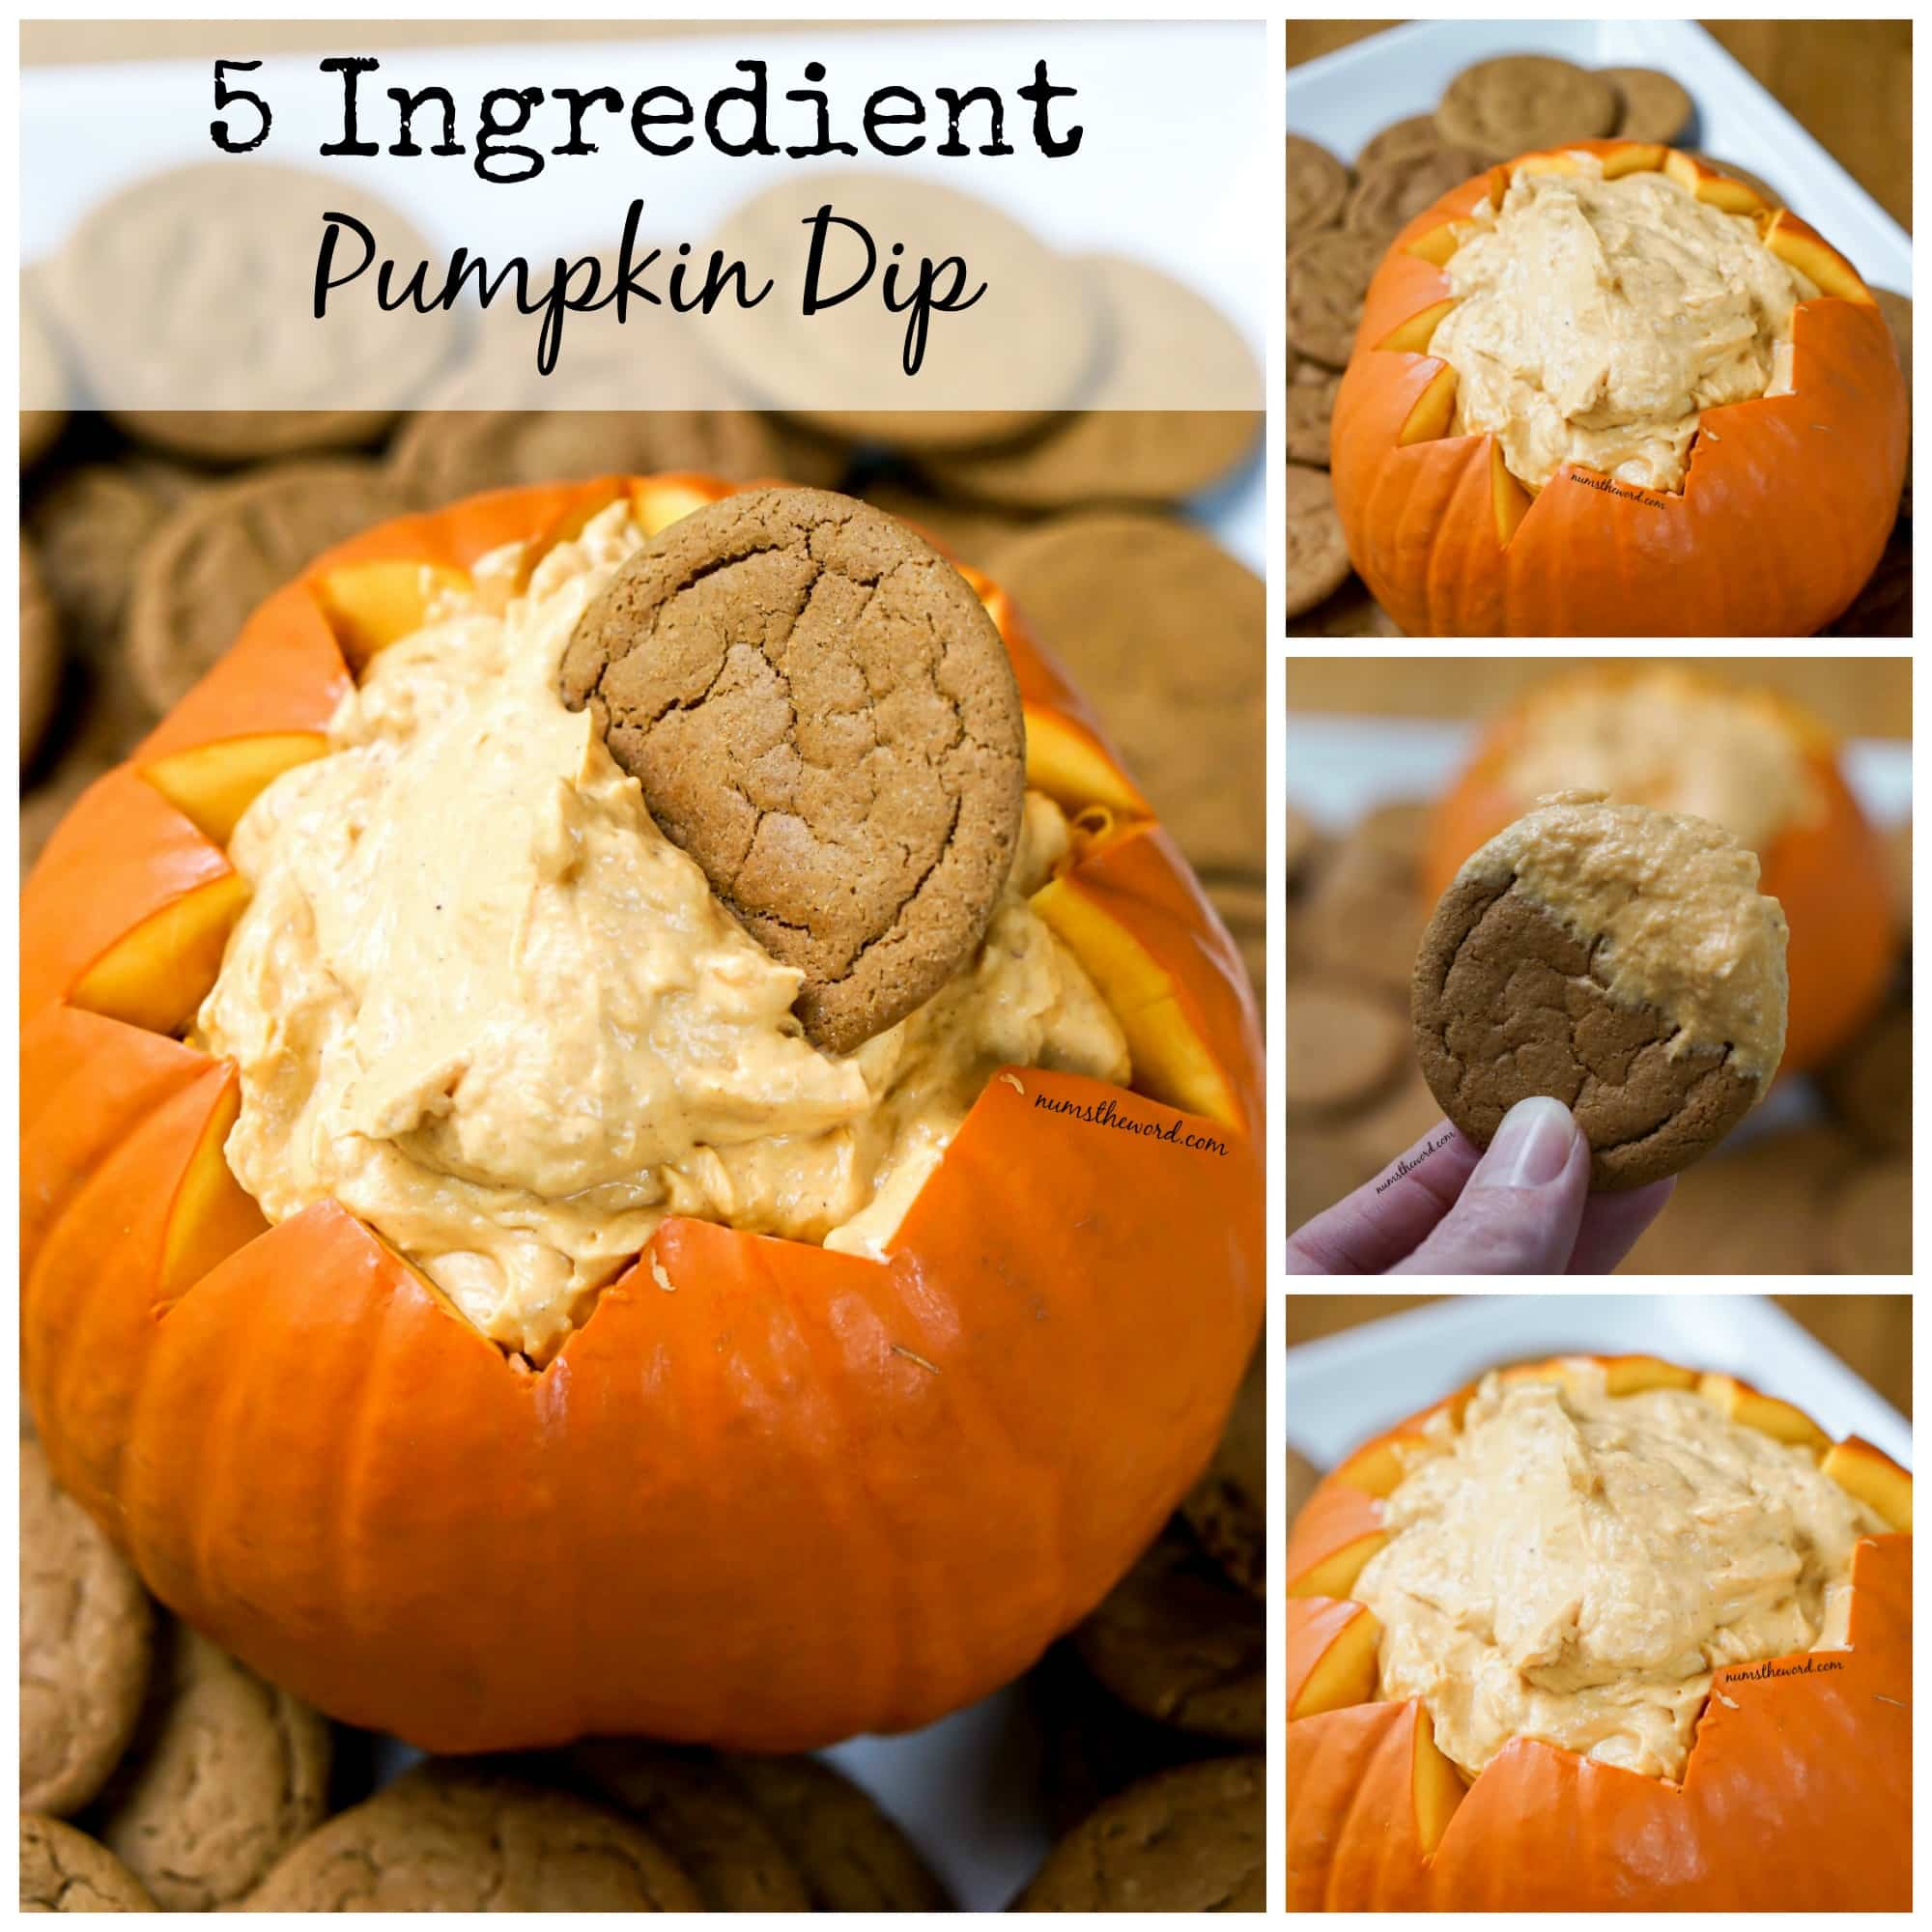 5 Ingredient Pumpkin Dip